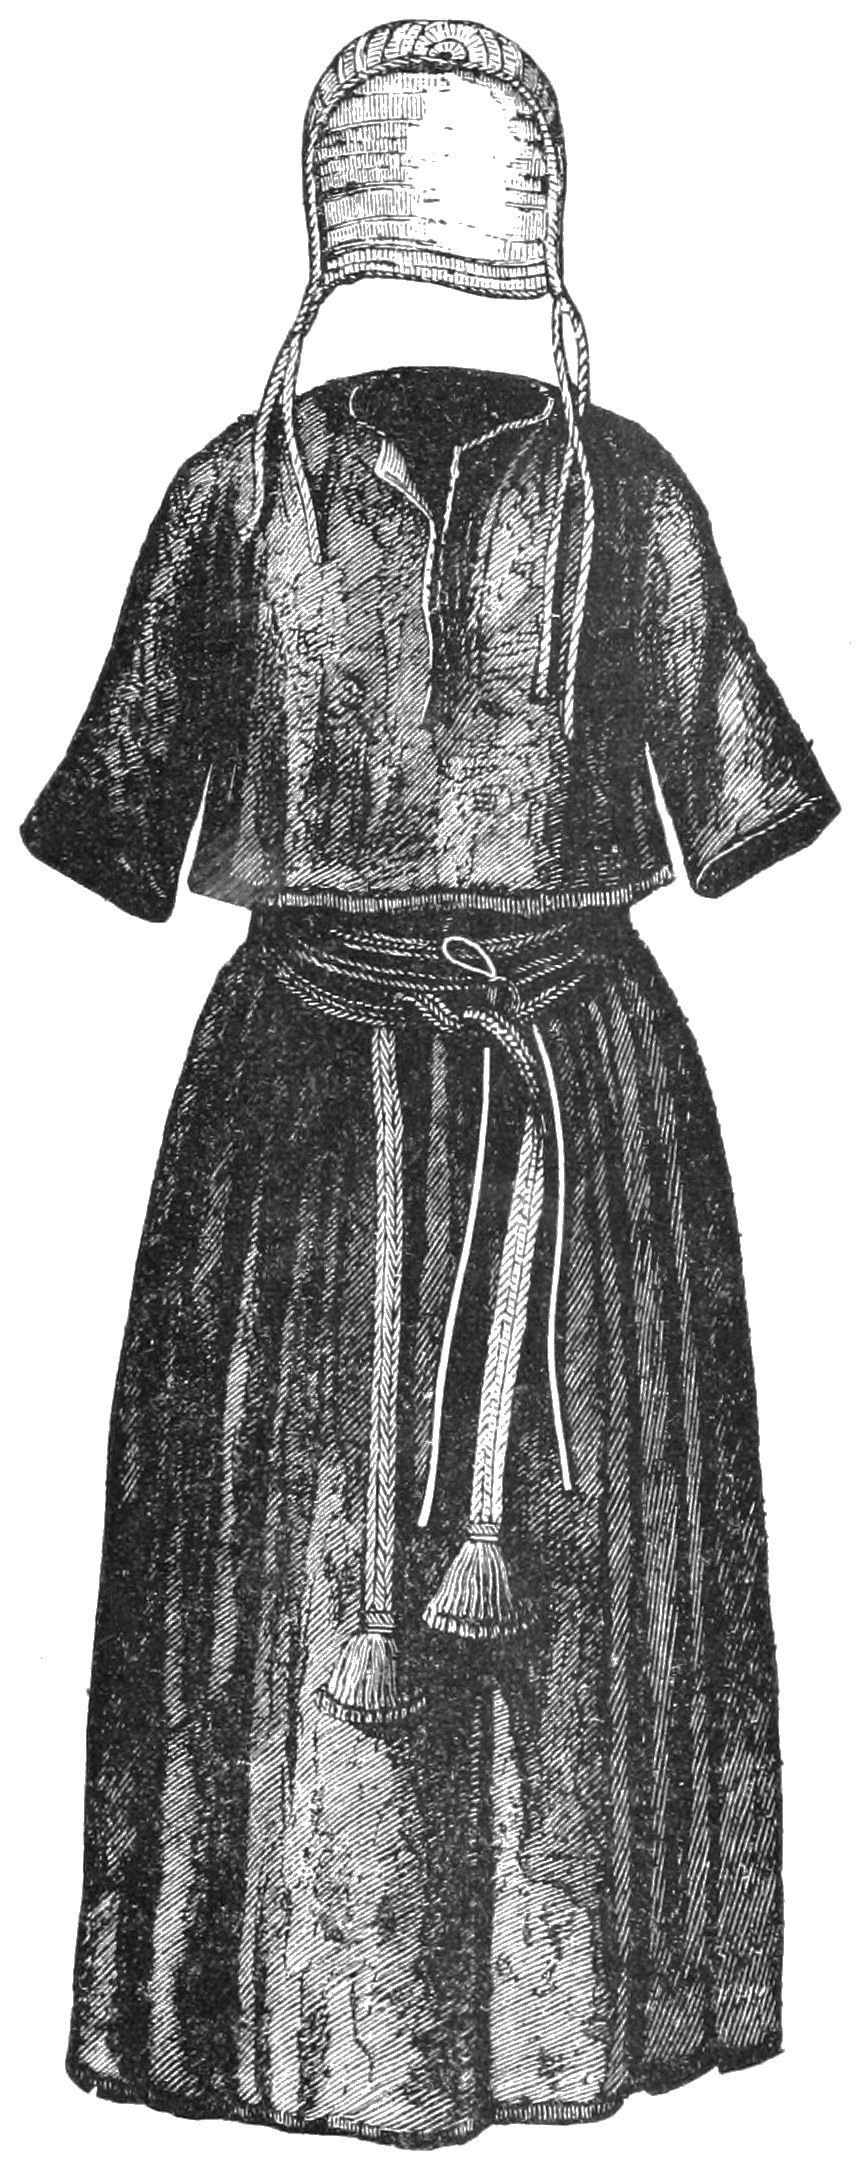 PSM V35 D808 Woman dress from borum eshoi jutland.jpg